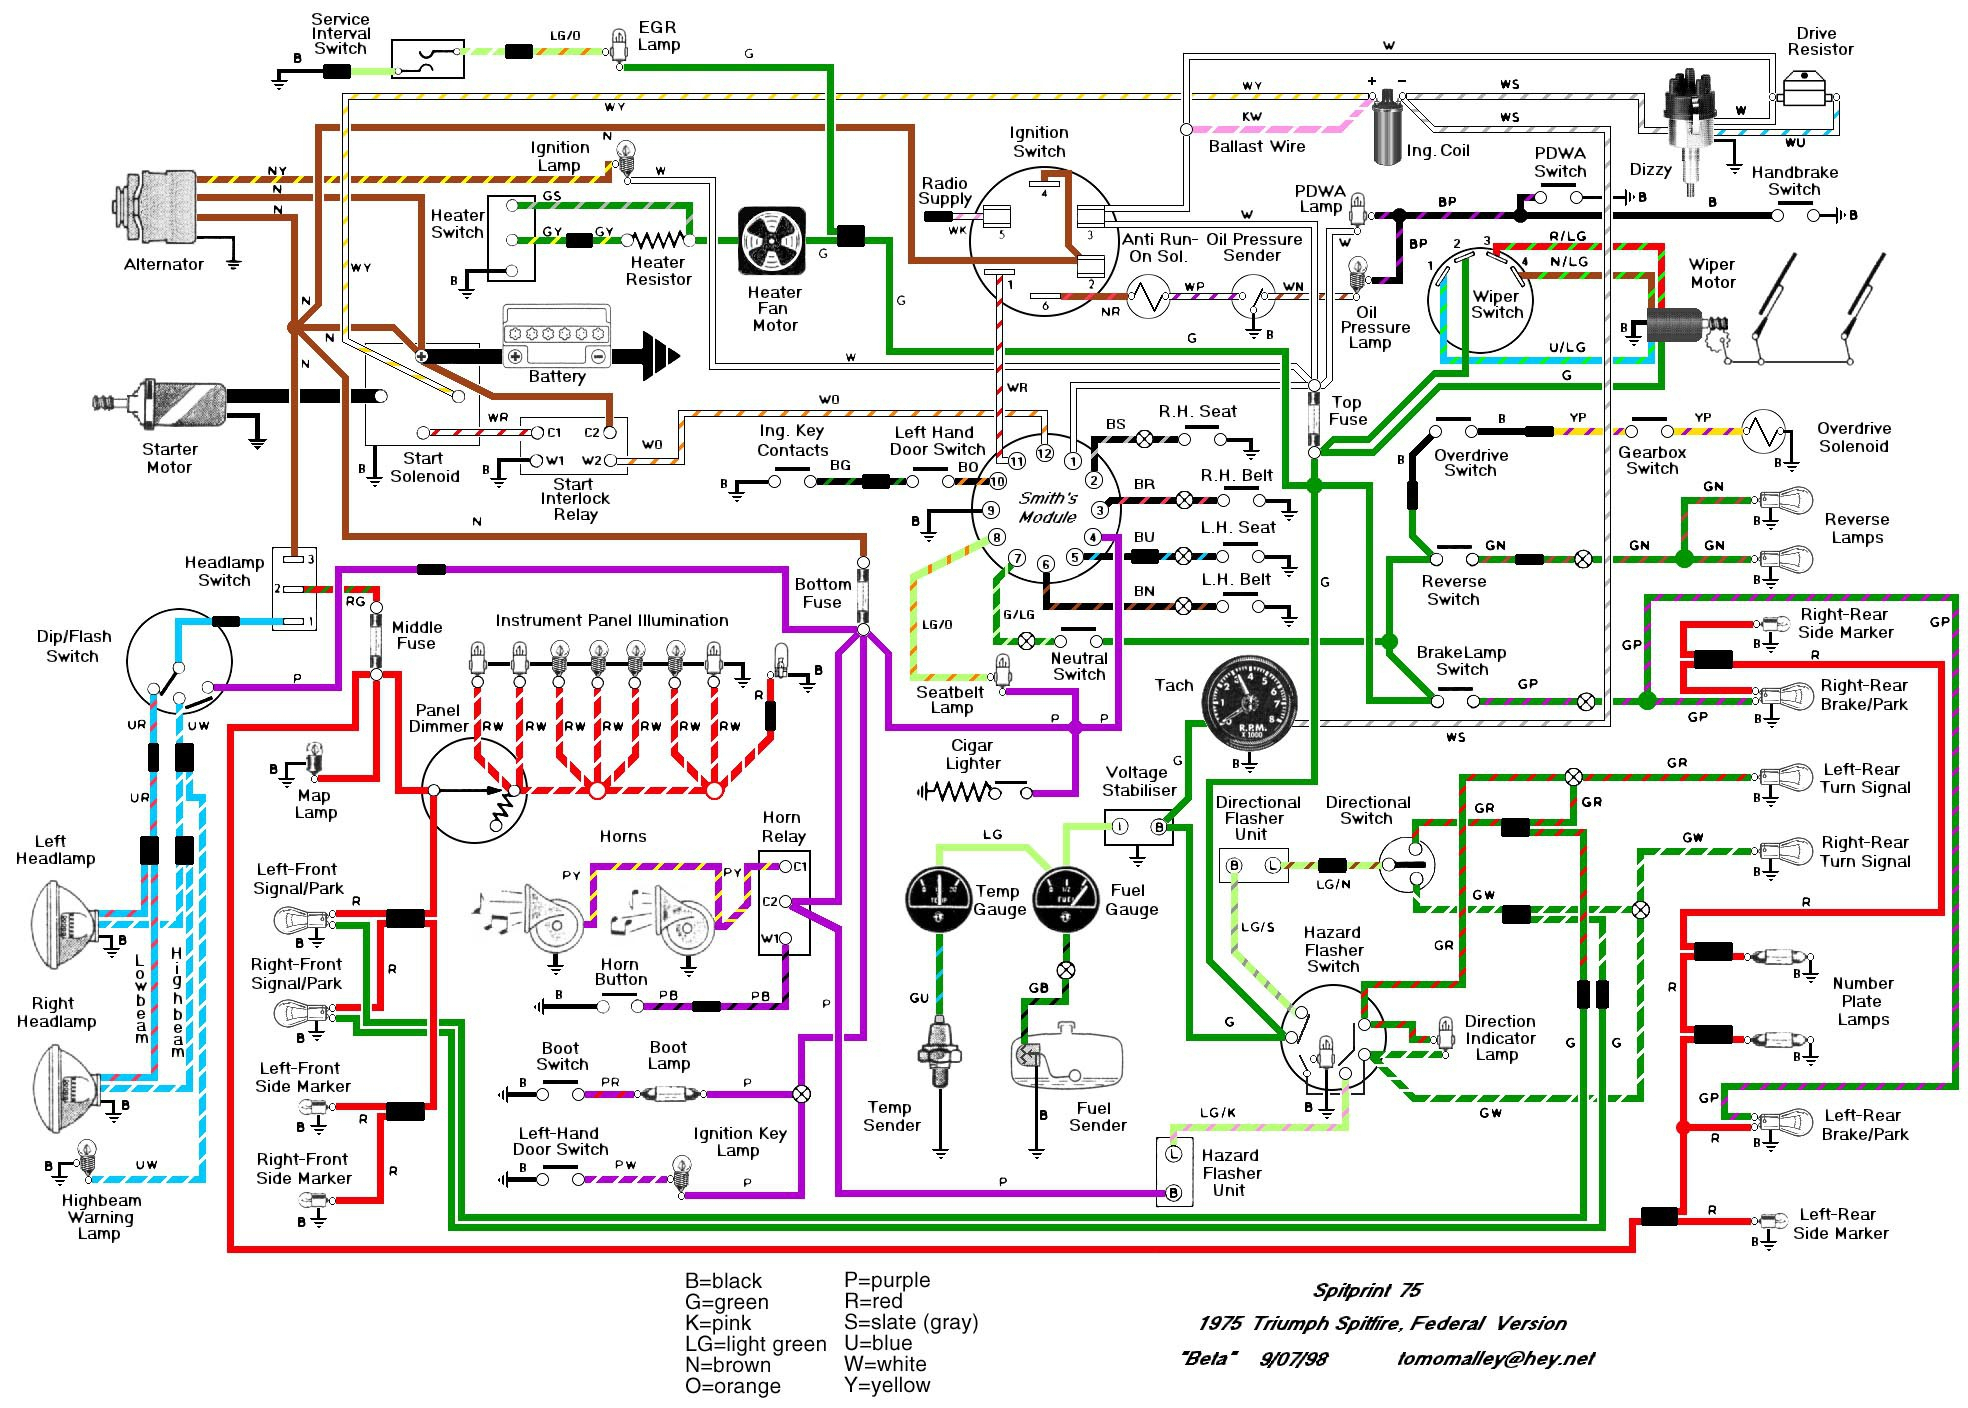 Ez Wiring Harness Jeep -Rover 75 Electric Seat Wiring Diagram | Begeboy Wiring  Diagram Source | Wrangler Ez Wiring Harness Diagram |  | Begeboy Wiring Diagram Source